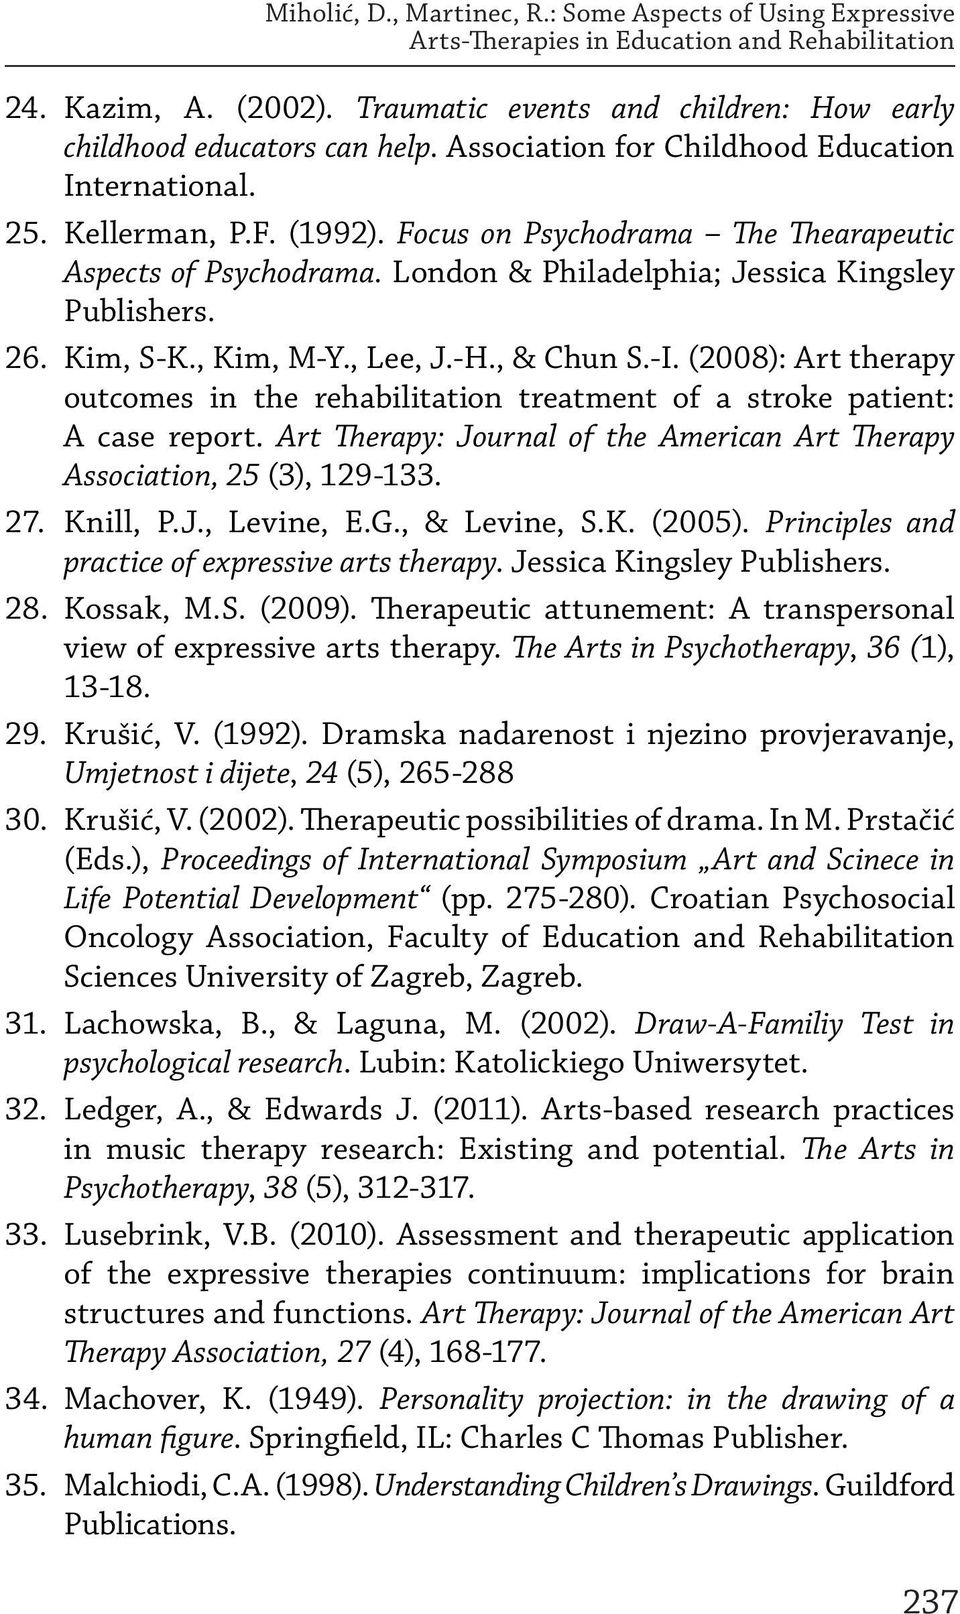 Kim, S-K., Kim, M-Y., Lee, J.-H., & Chun S.-I. (2008): Art therapy outcomes in the rehabilitation treatment of a stroke patient: A case report.